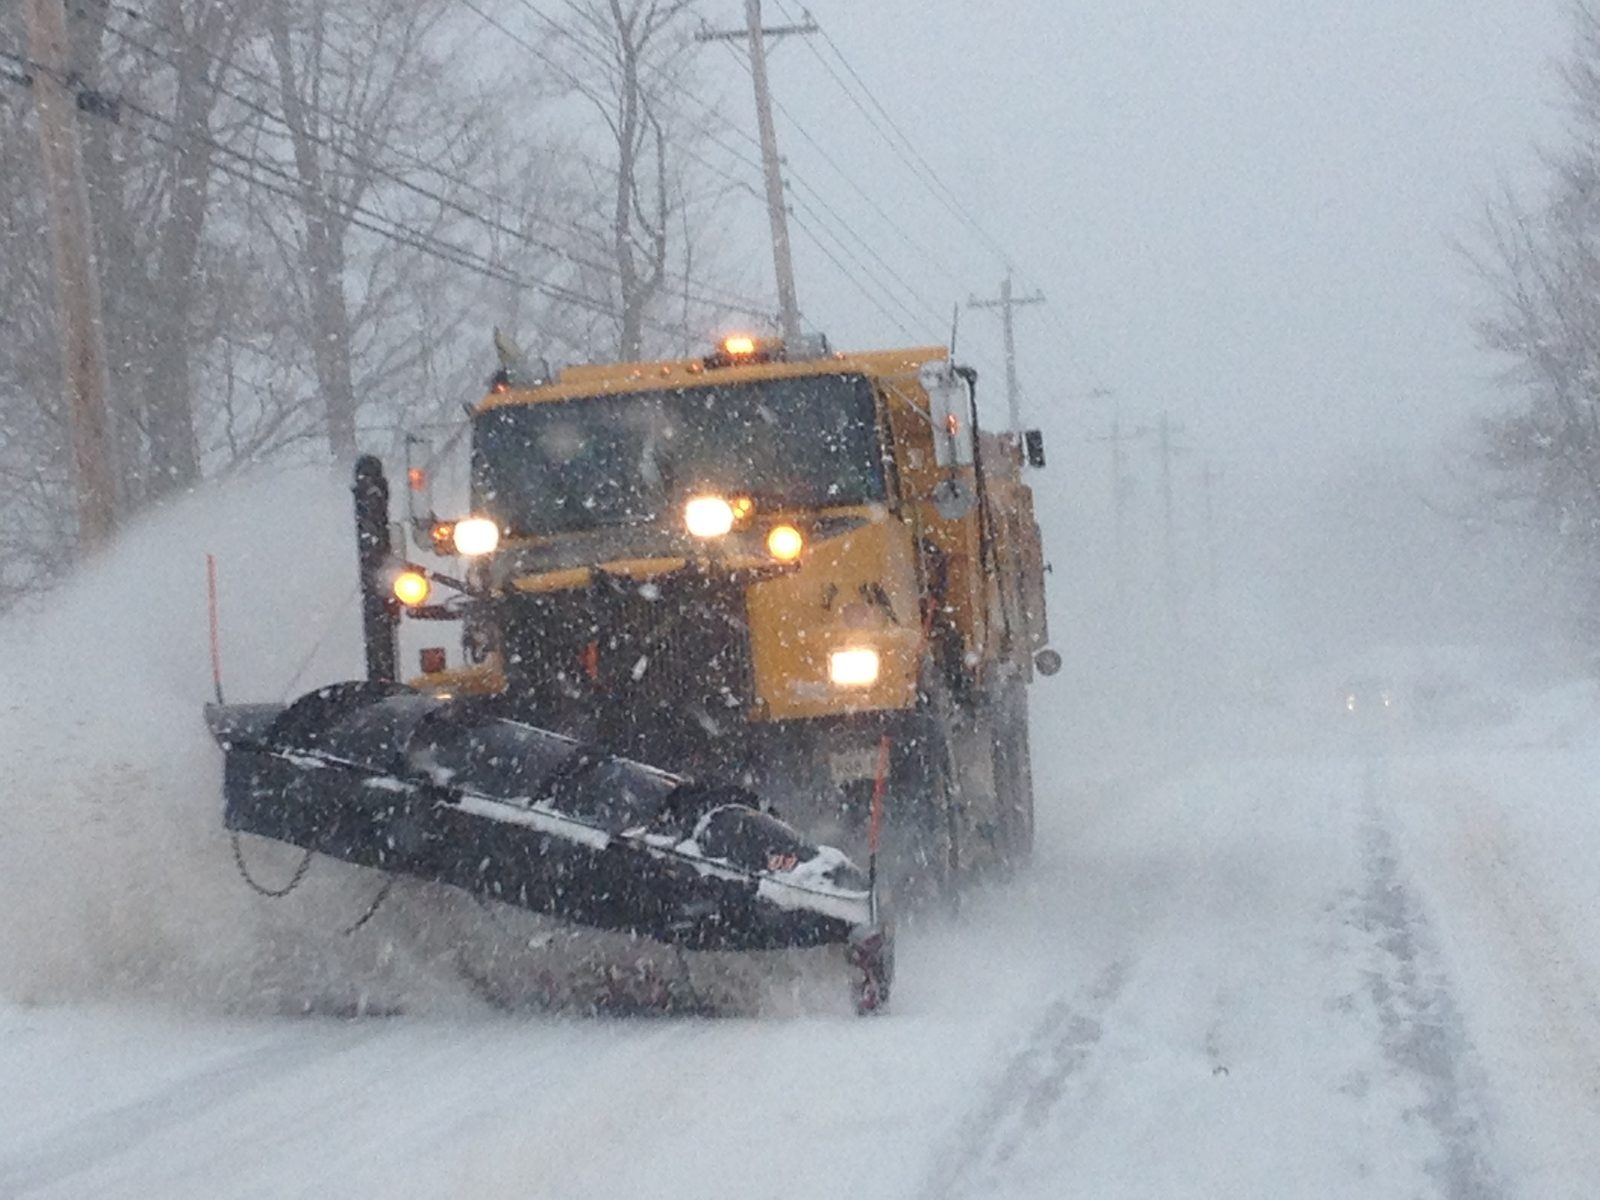 Significant snowfall expected Monday night